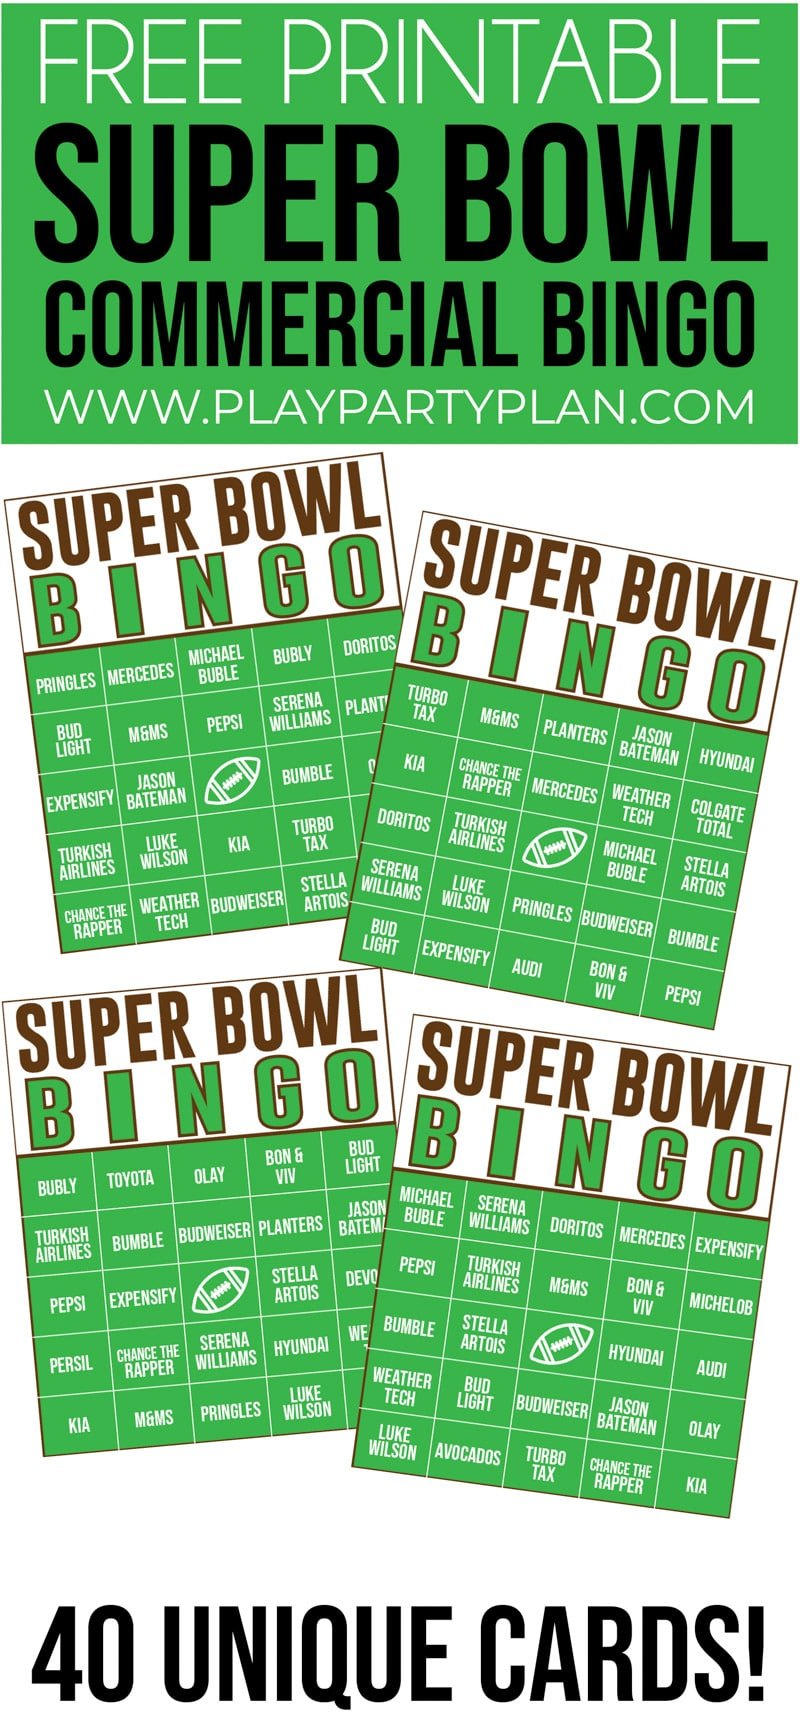 photo regarding Printable Super Bowl Bingo Cards identified as The Suitable Tremendous Bowl Bingo Activity - 2019 Tremendous Bowl Industrial